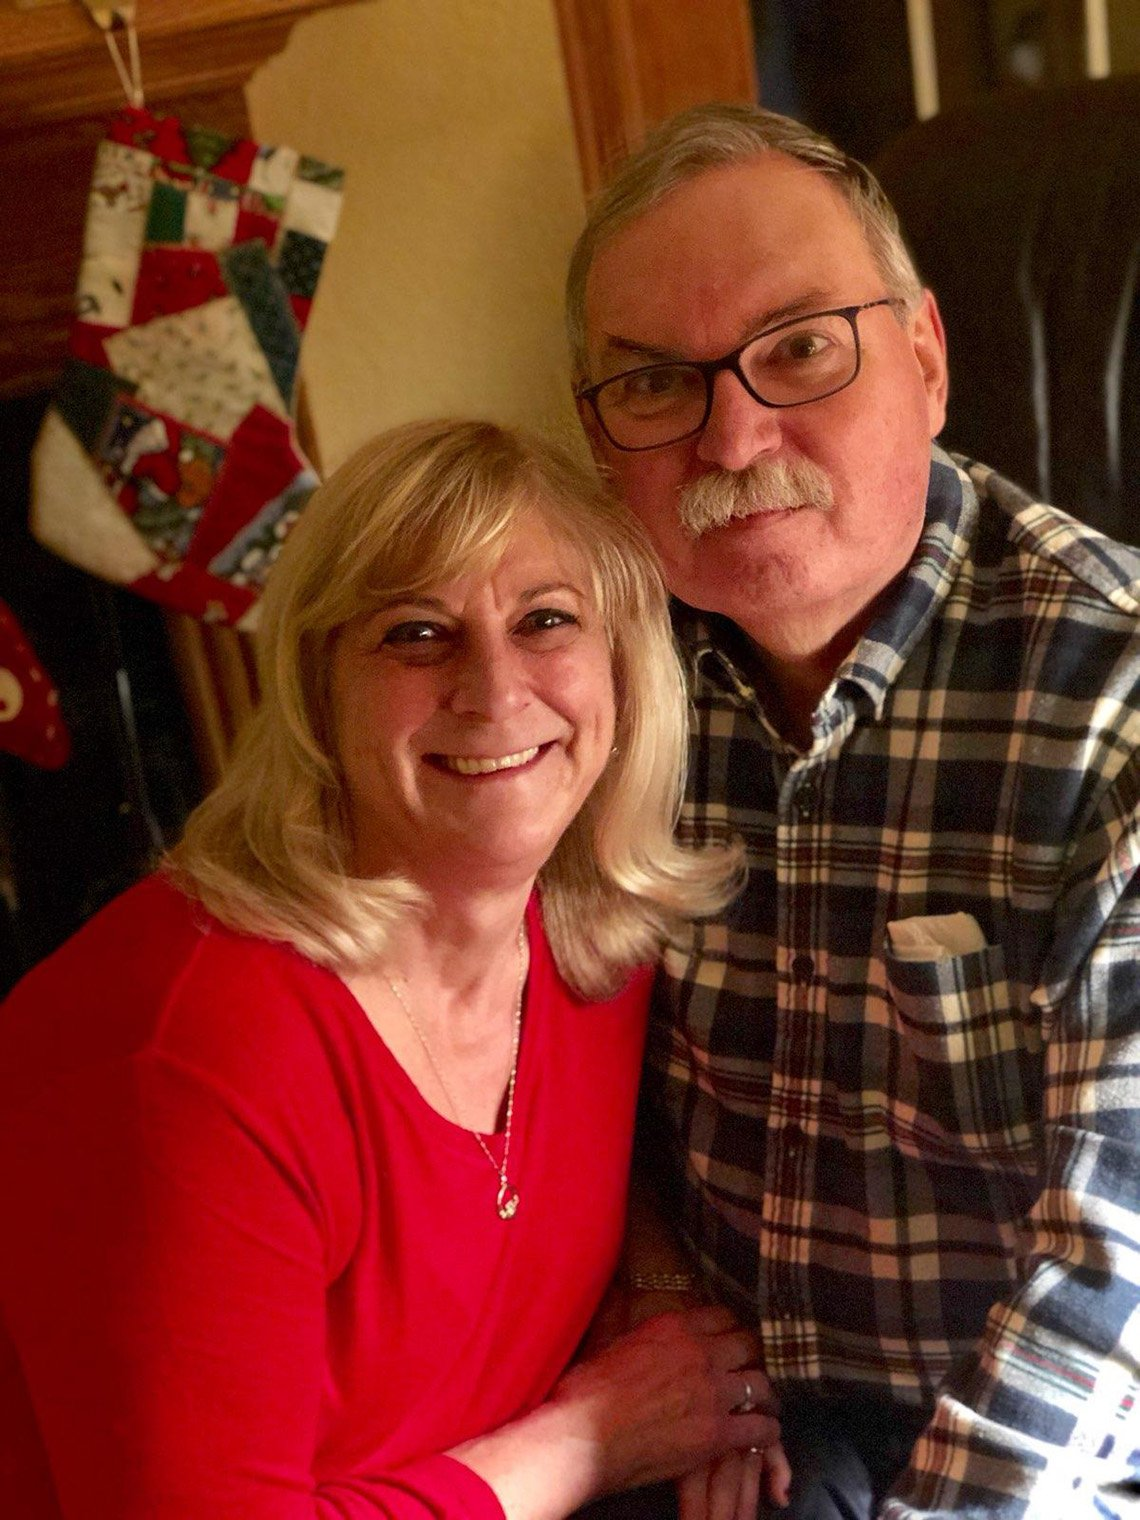 Carol Roche has been caring for her husband, Dave, after he was diagnosed with multiple sclerosis